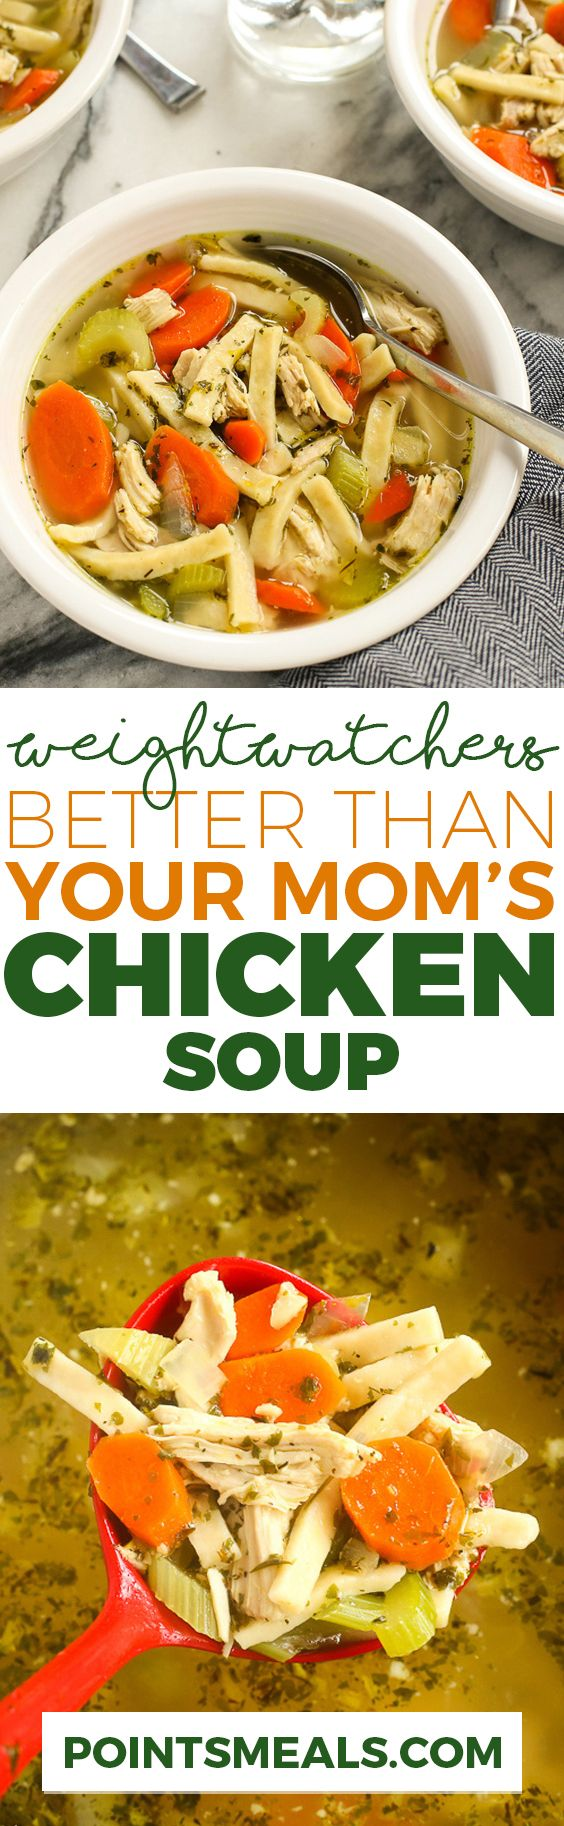 BETTER THAN YOUR MOM'S CHICKEN SOUP WITH WEIGHT WATCHERS SMARTPOINTS